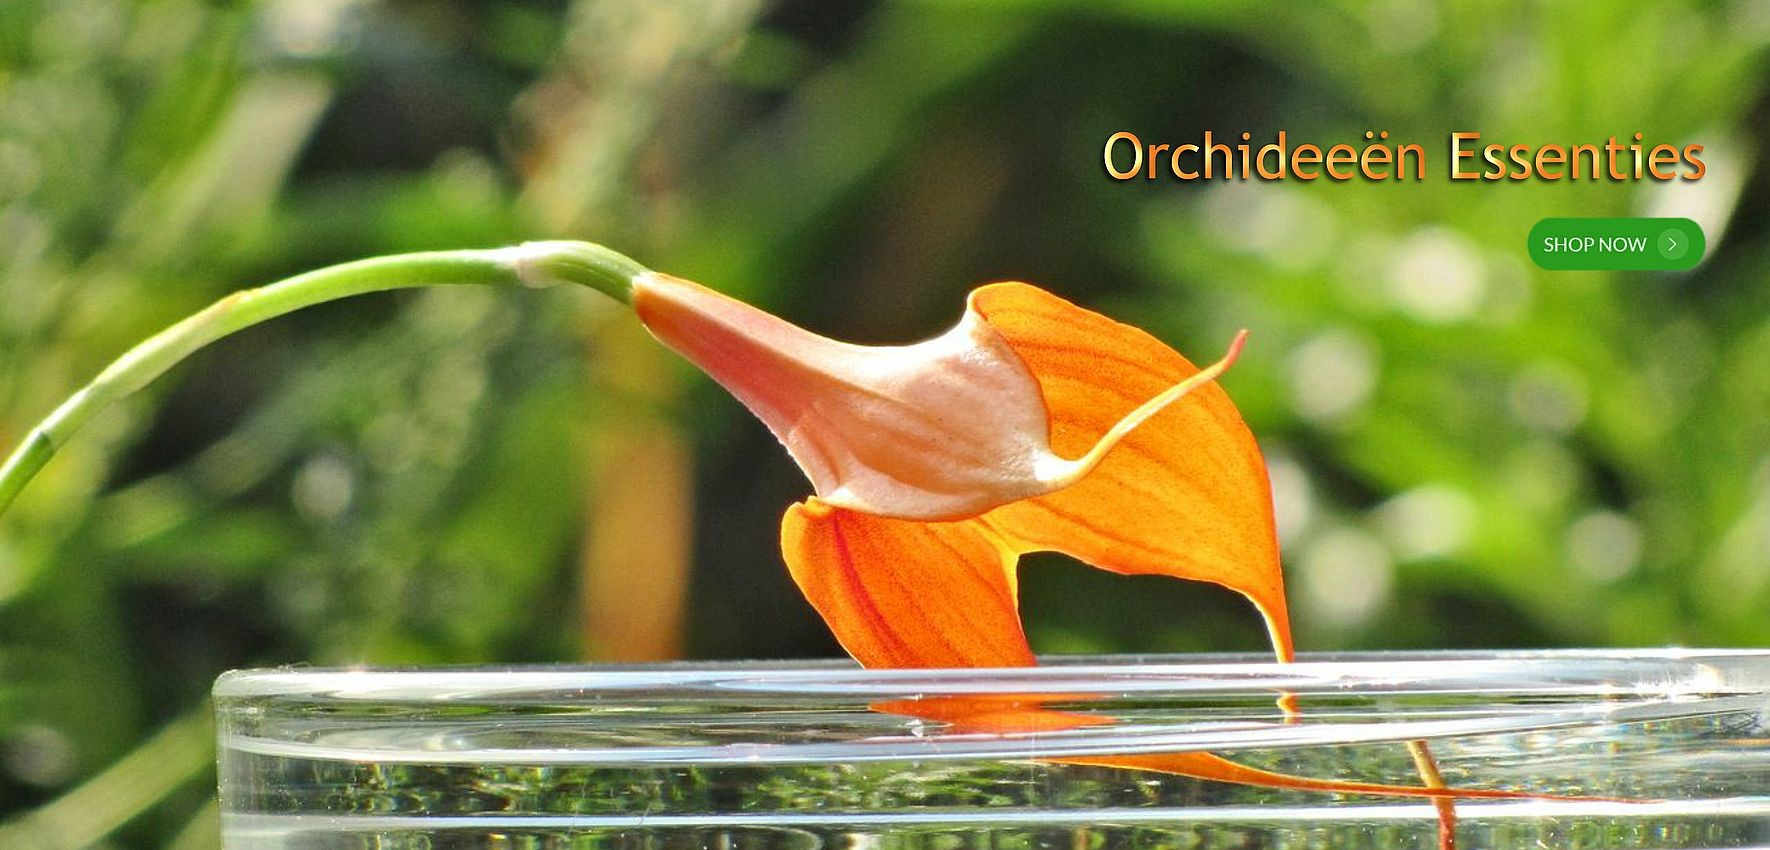 68-orchidee-essenties